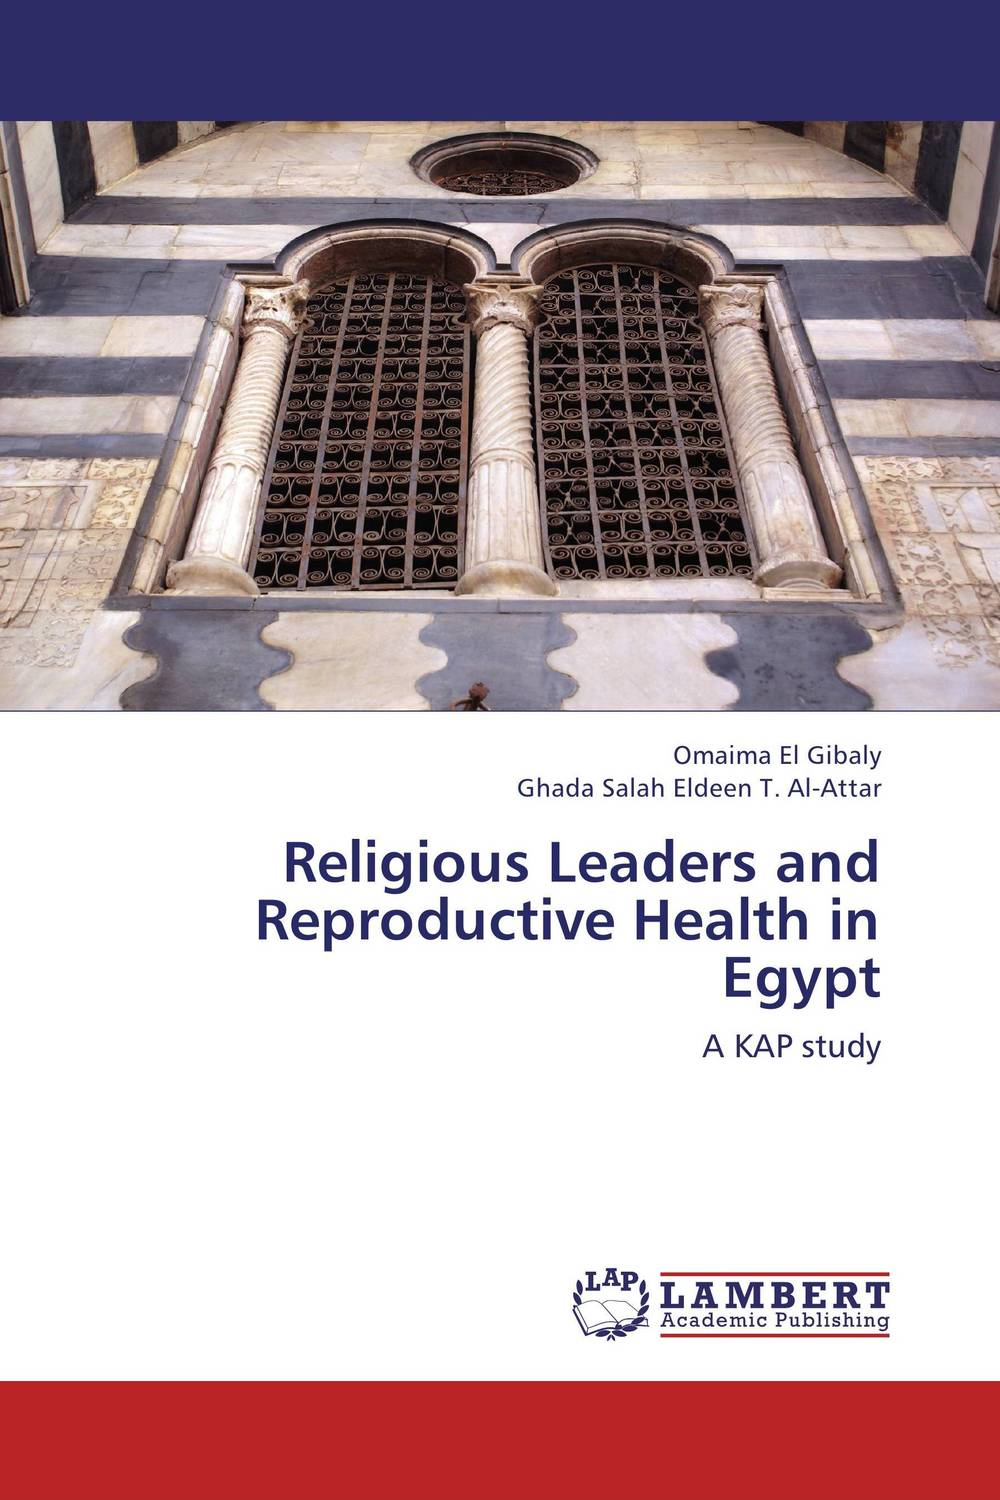 Religious Leaders and Reproductive Health in Egypt samhaa samir ibrahim mohammed and sherif mohamed attia houria family relations and reproductive health through early marriage